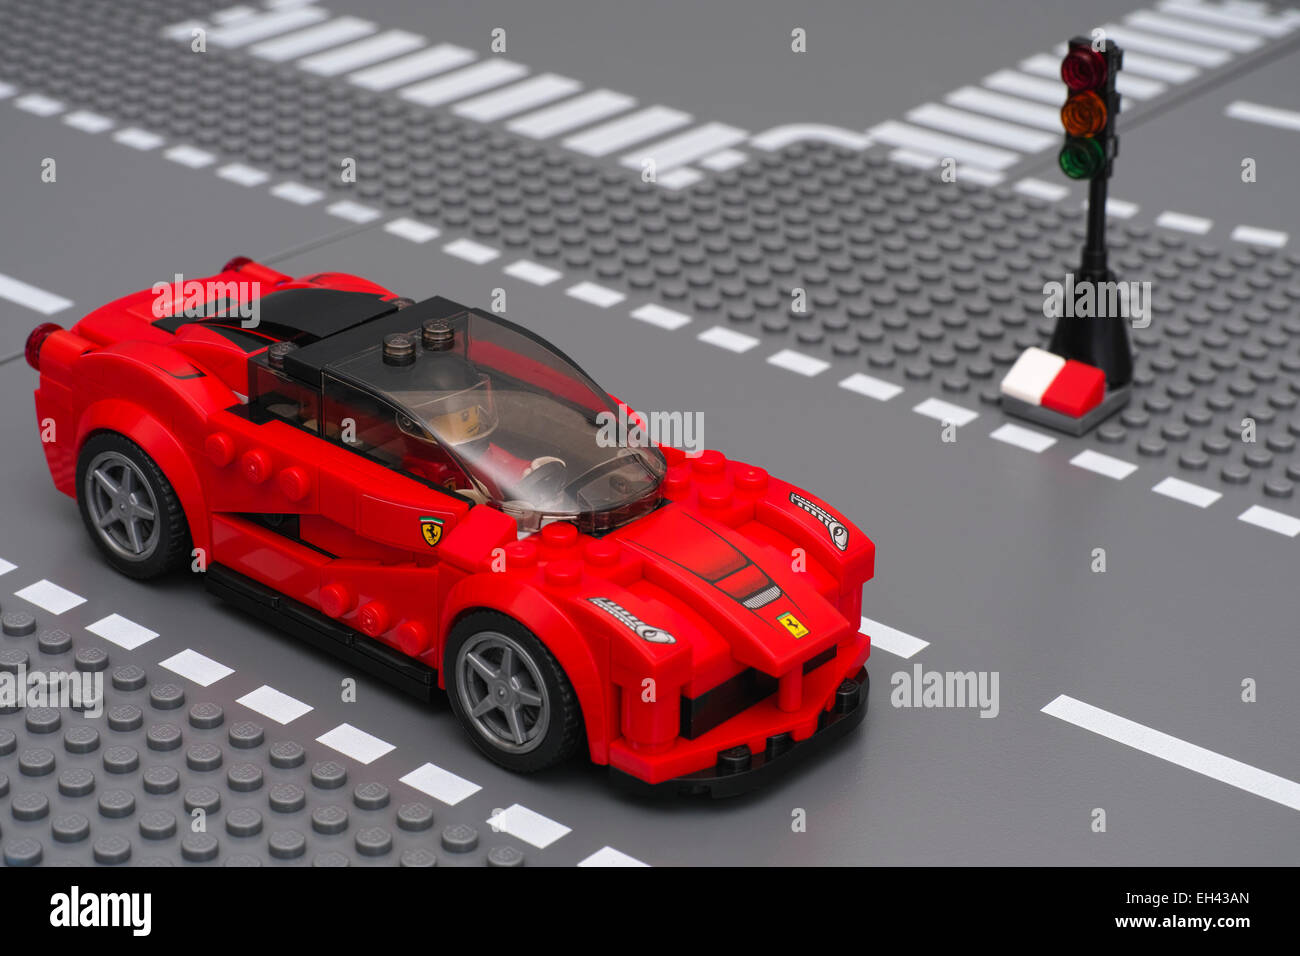 100 lego speed champions lamborghini the world u0027s newest photos of champions and. Black Bedroom Furniture Sets. Home Design Ideas